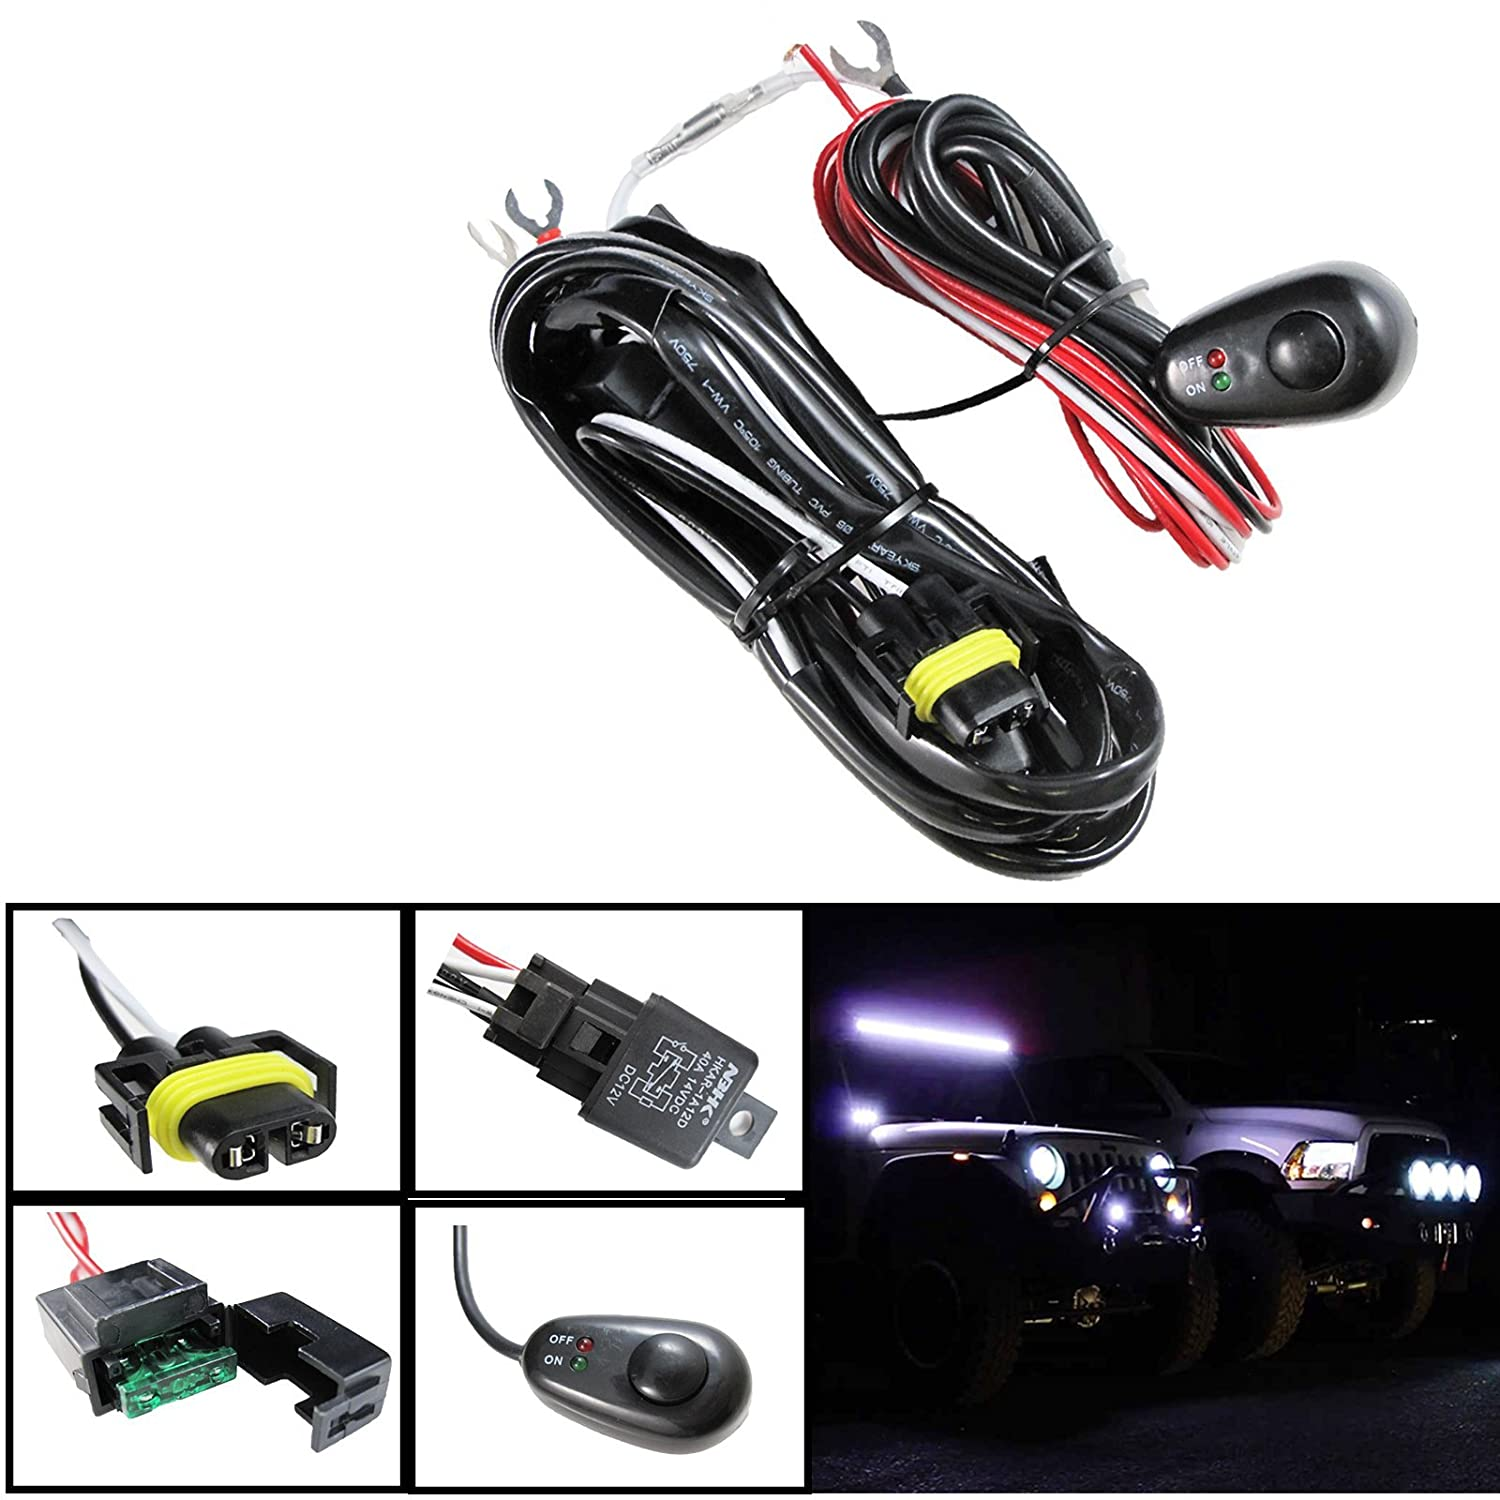 H11 H8 Relay Harness Wire Kit Led On Off Switch For Mx 3 Fuse Box Wiring Aftermarket Fog Lights Driving Hid Conversion Work Lamp Etc Car